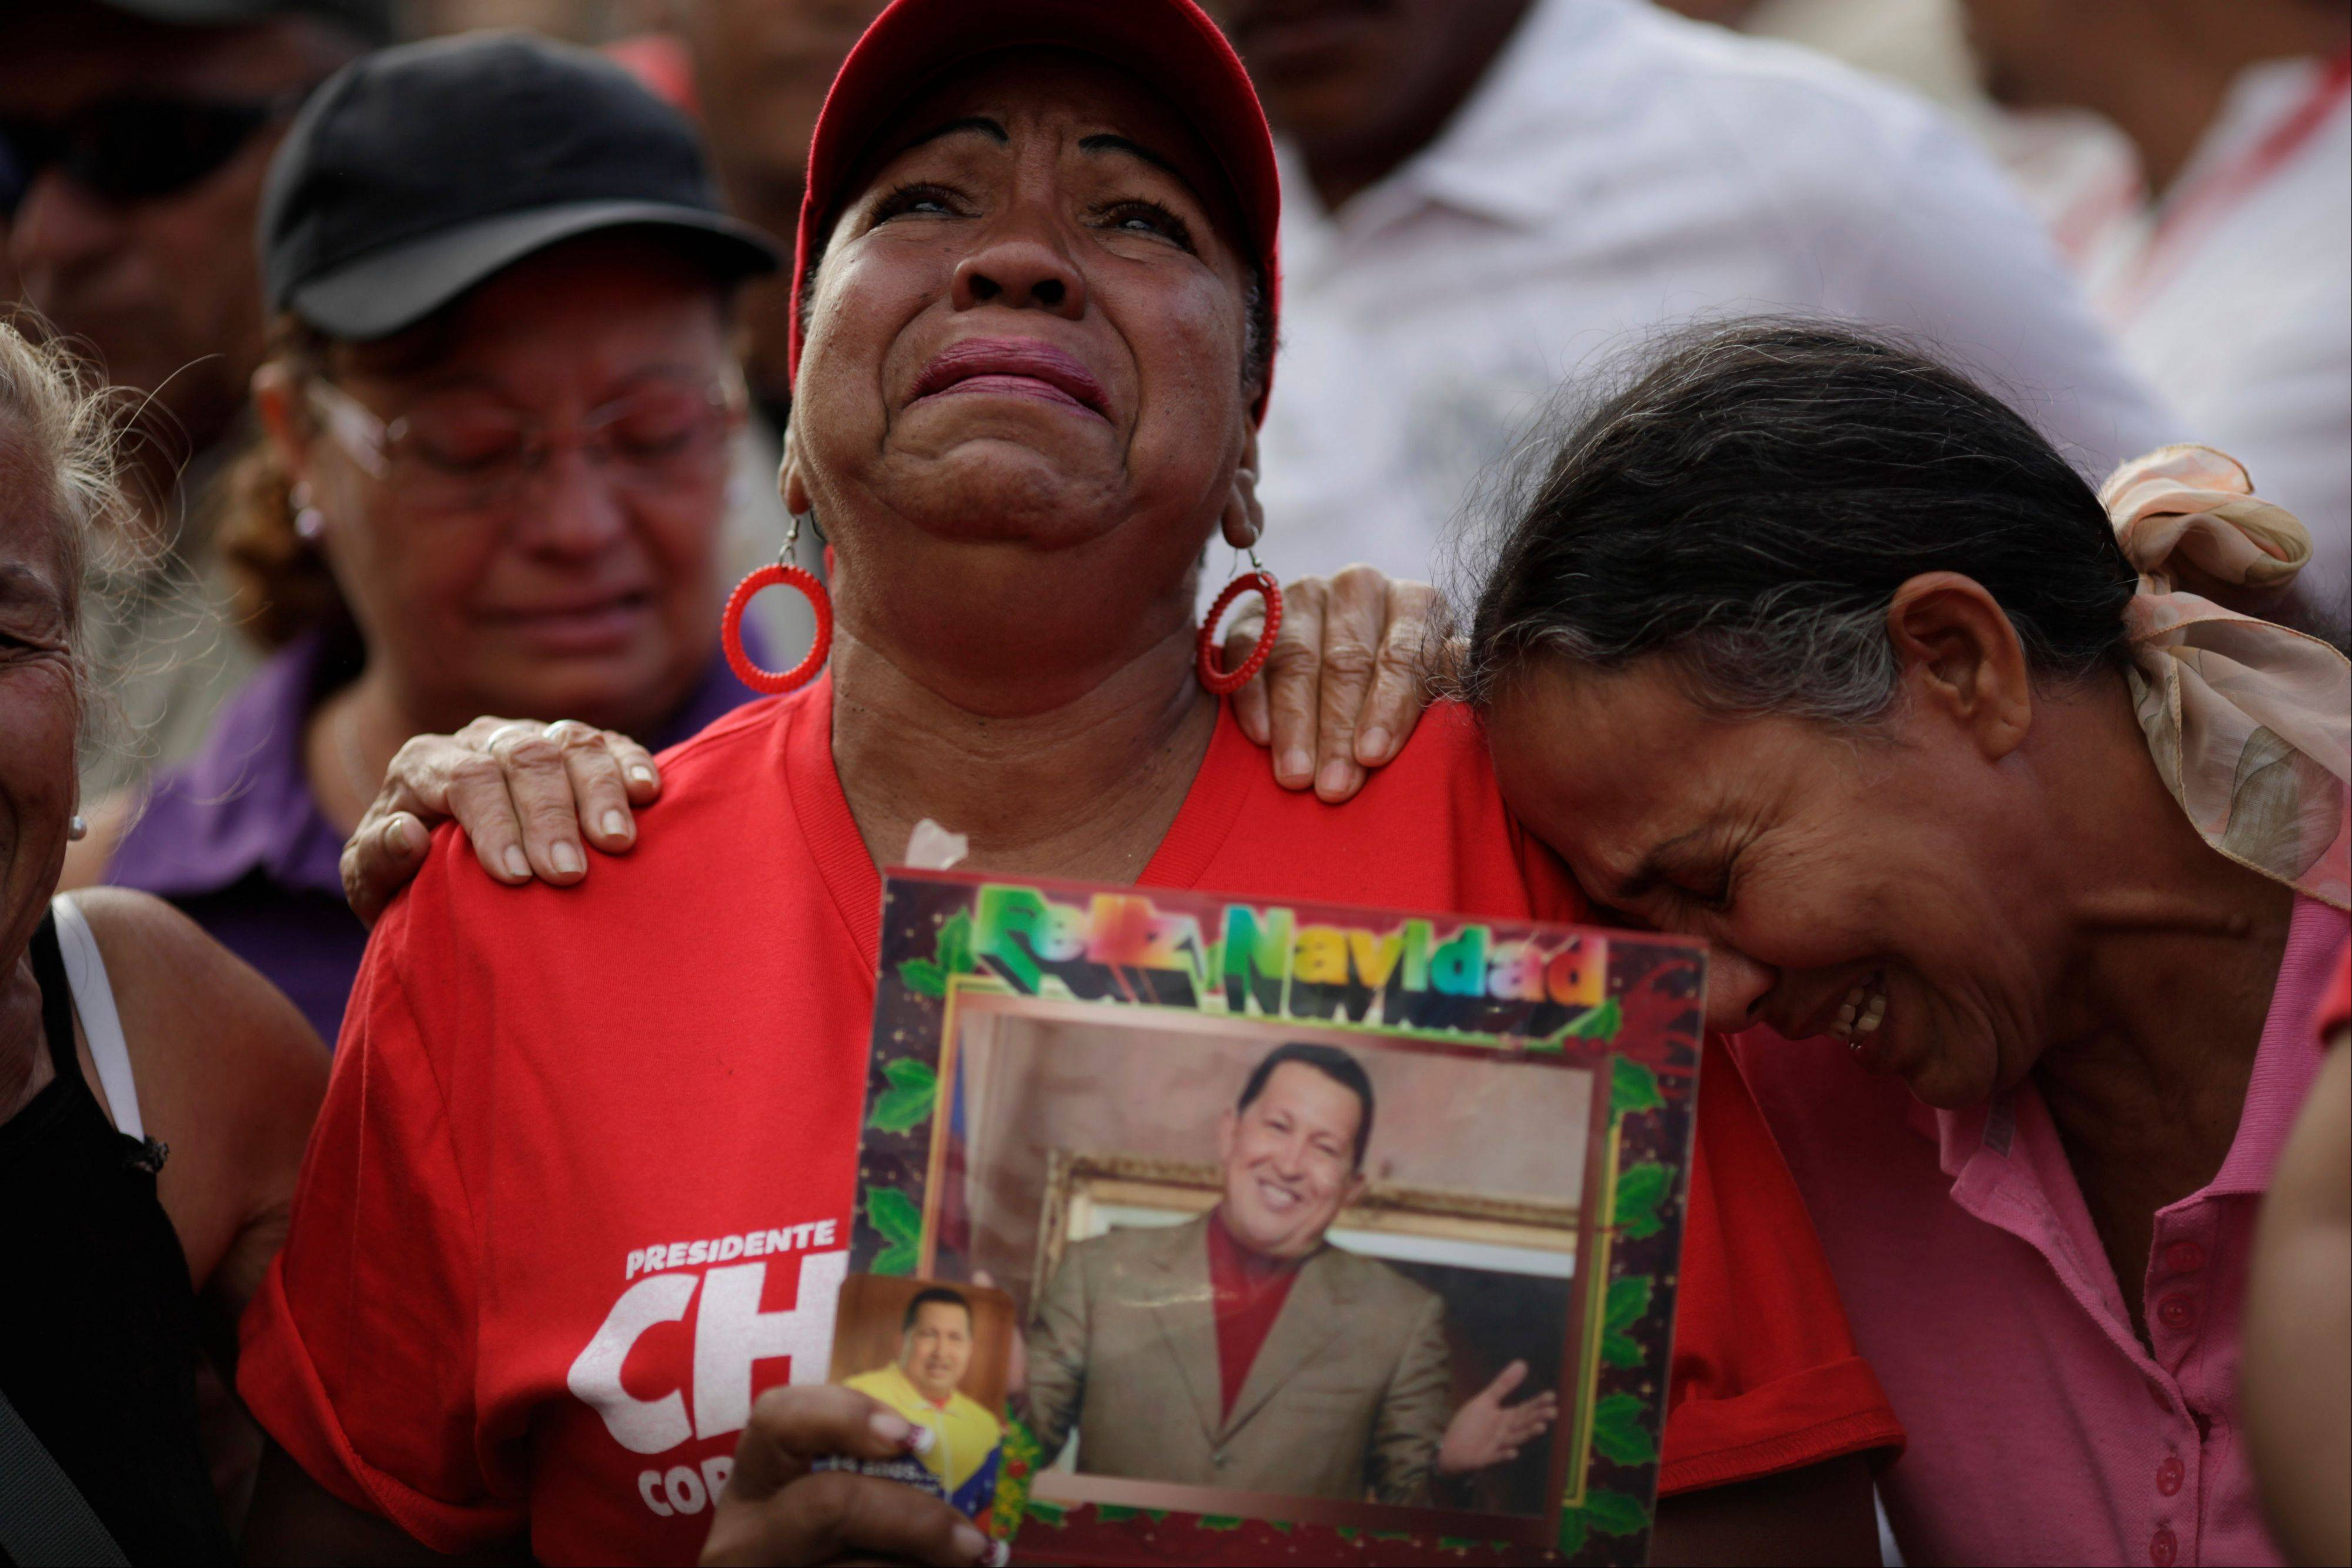 Supporters of Venezuela's President Hugo Chavez cry outside the military hospital where President Hugo Chavez, aged 58, died Tuesday in Caracas, Venezuela, Wednesday.